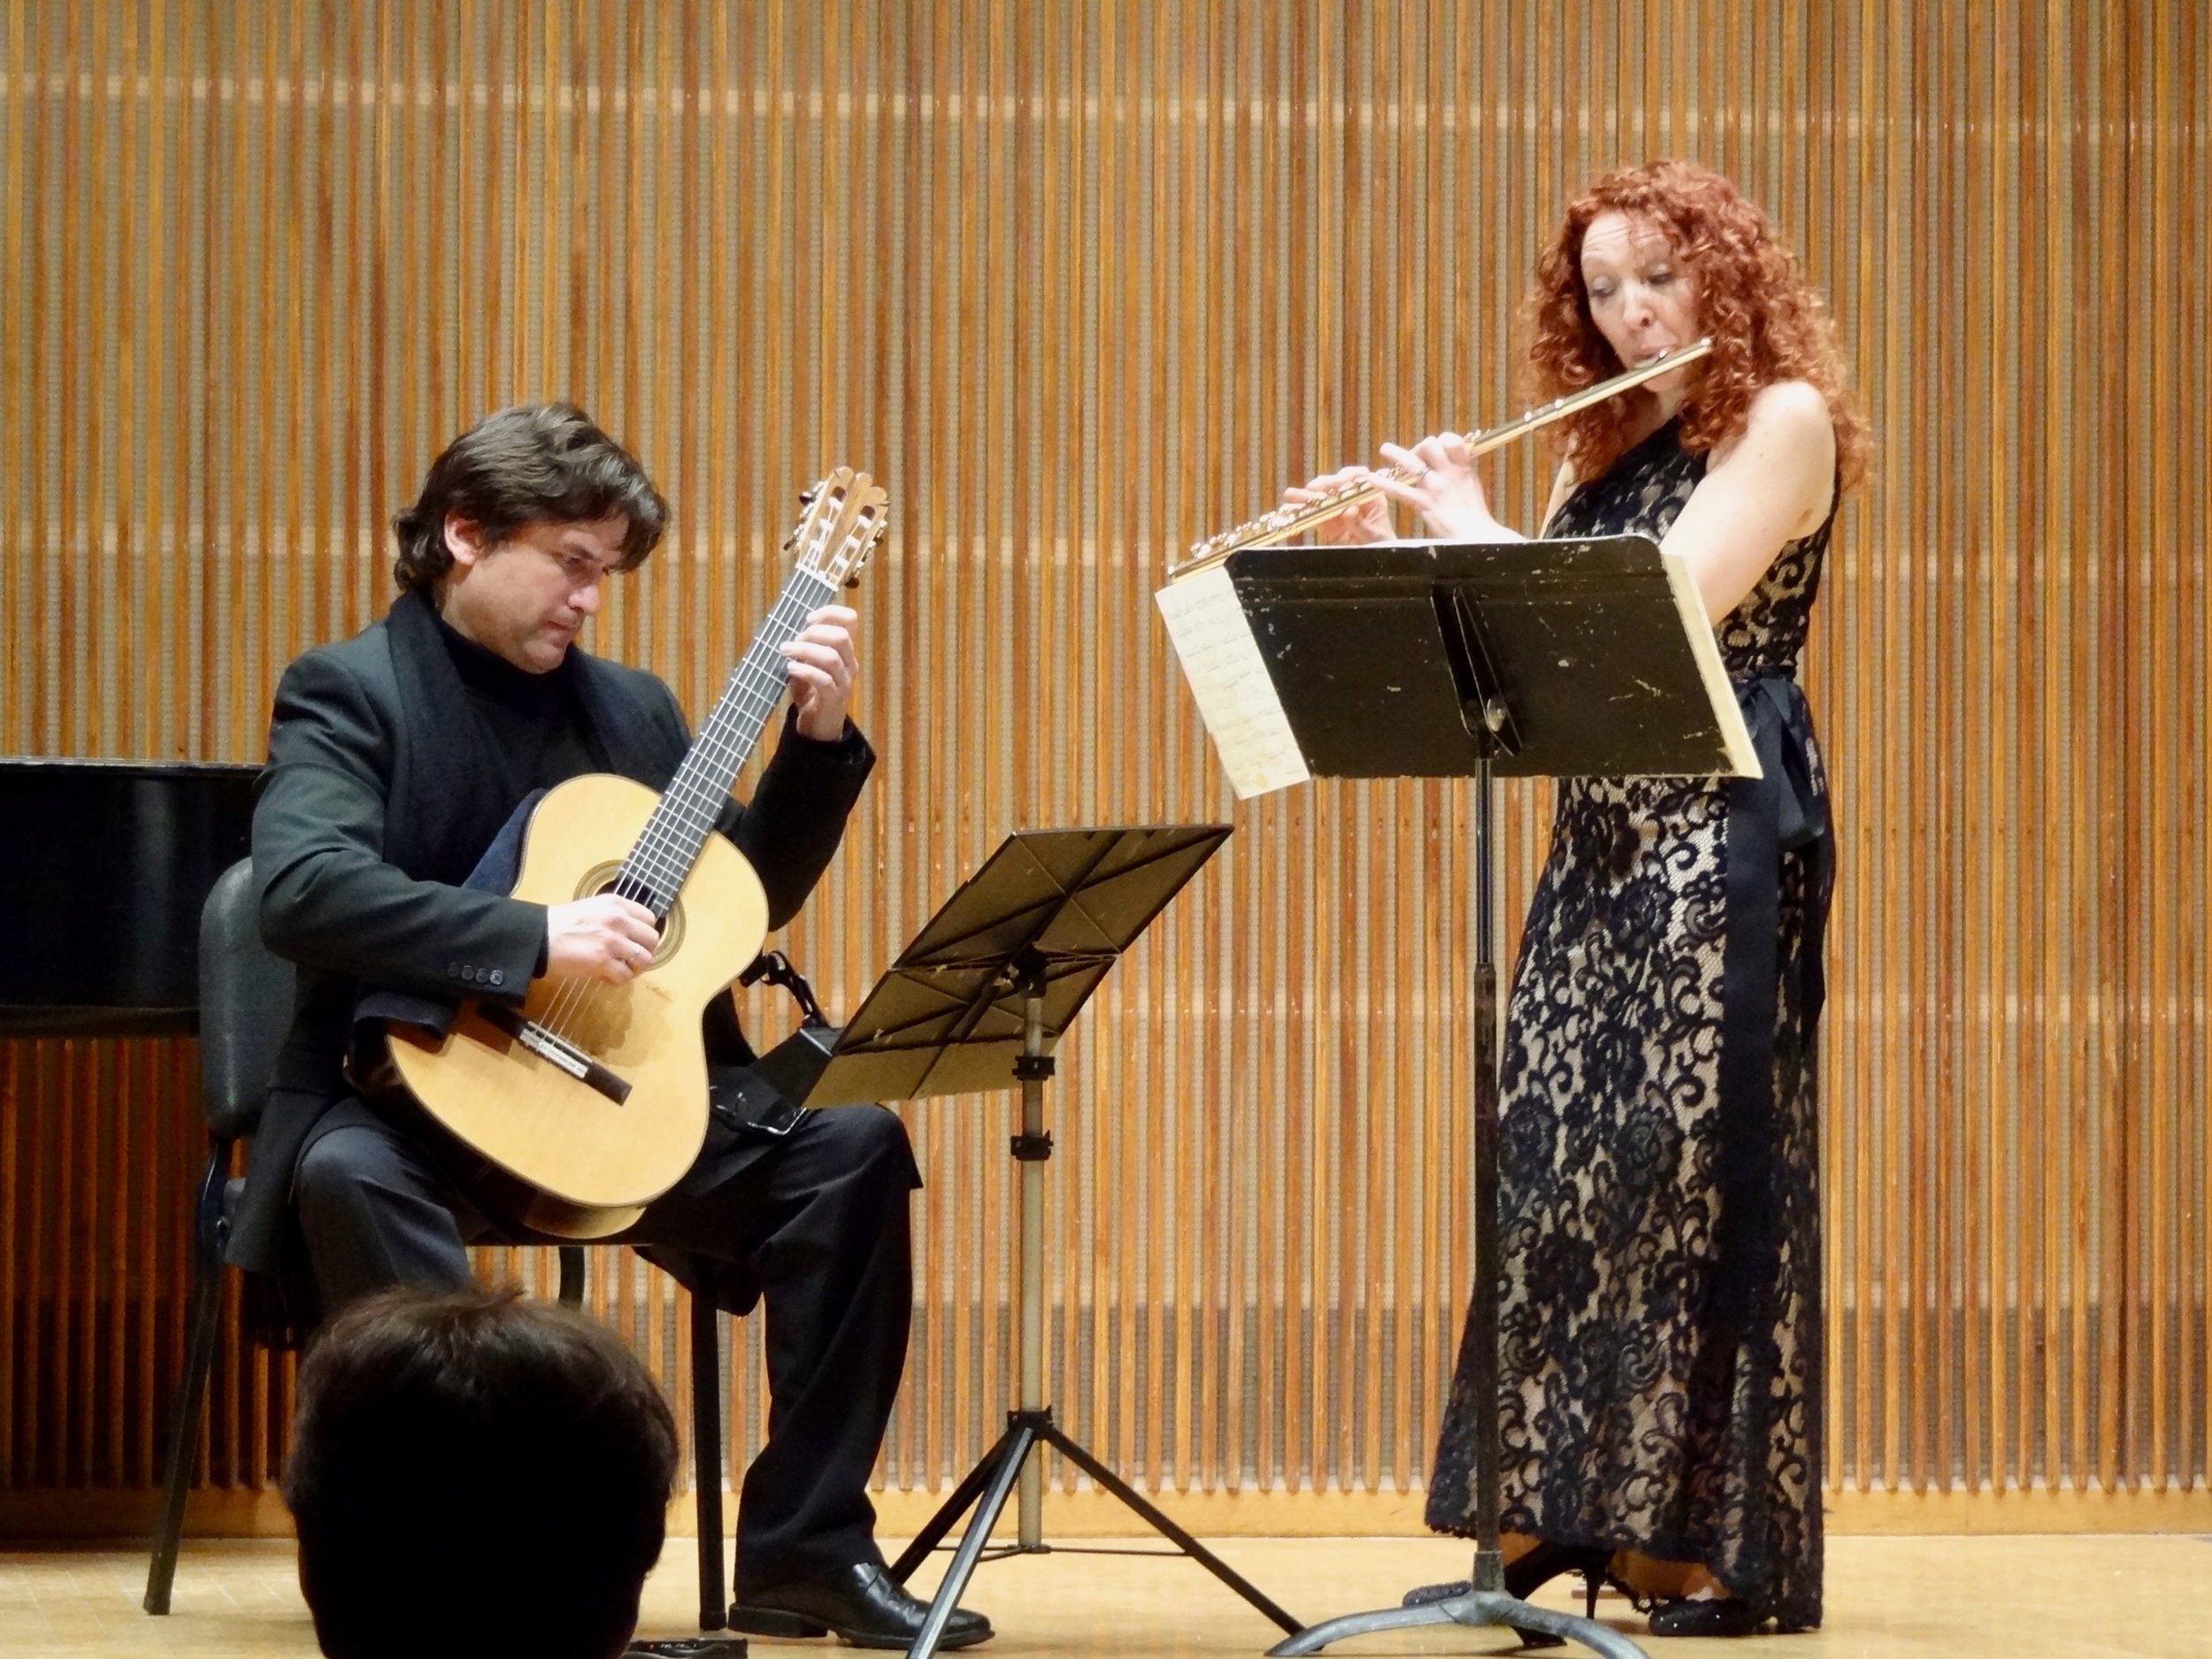 Rene Izquierdo with Eugenia Moliner, in Kulas Recital Hall